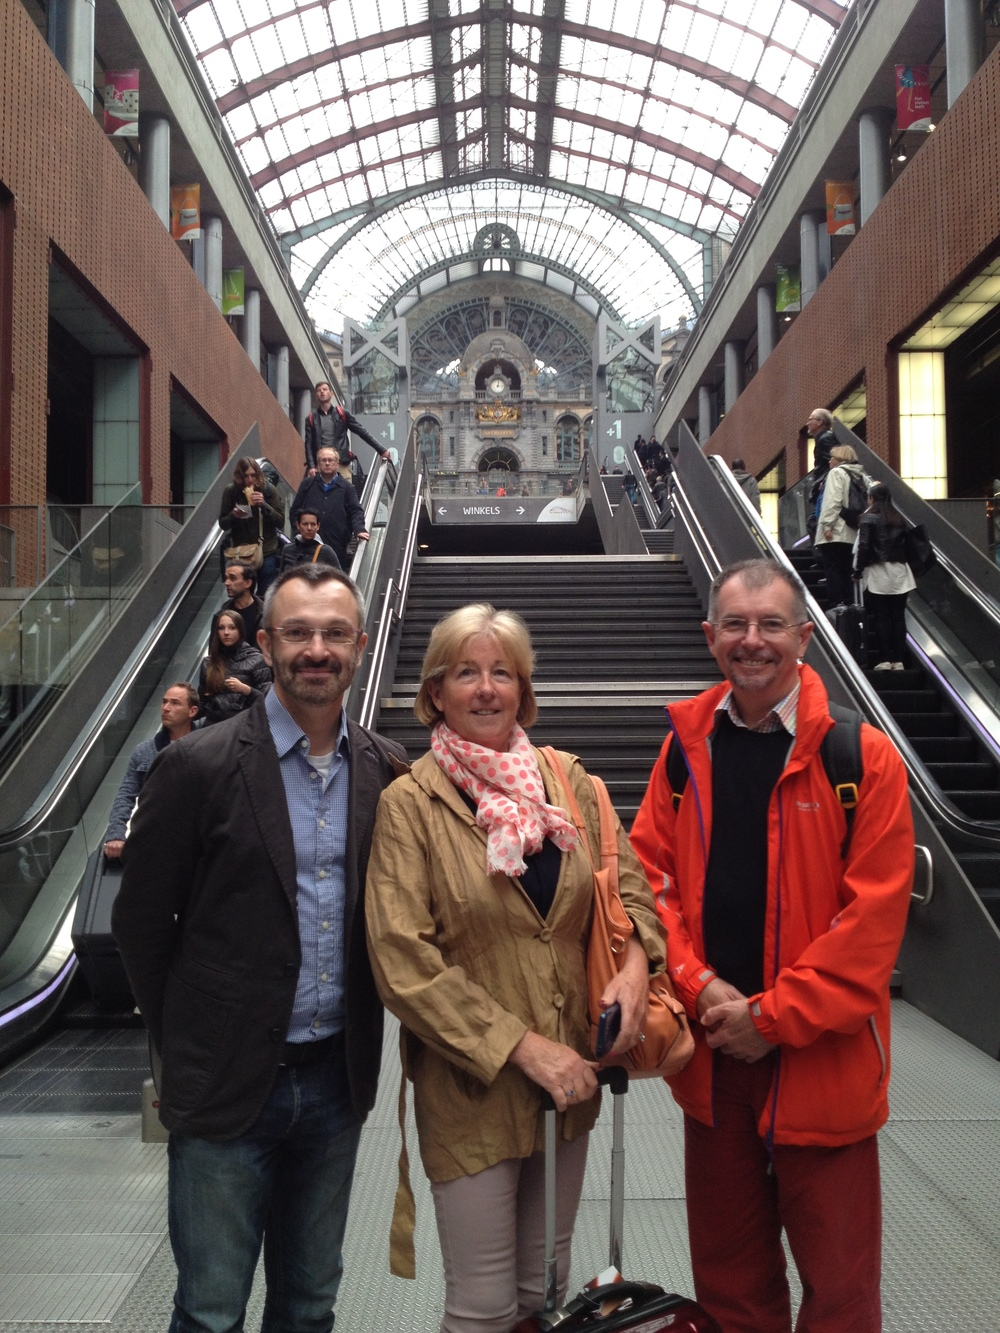 Nationally recognised Sexual, and Reproductive Health Nurses, Kathy French and Colin Roberts with Stephen Bitti, Managing Director of Nudge Associates arriving at Antwerp Station (May 2014)